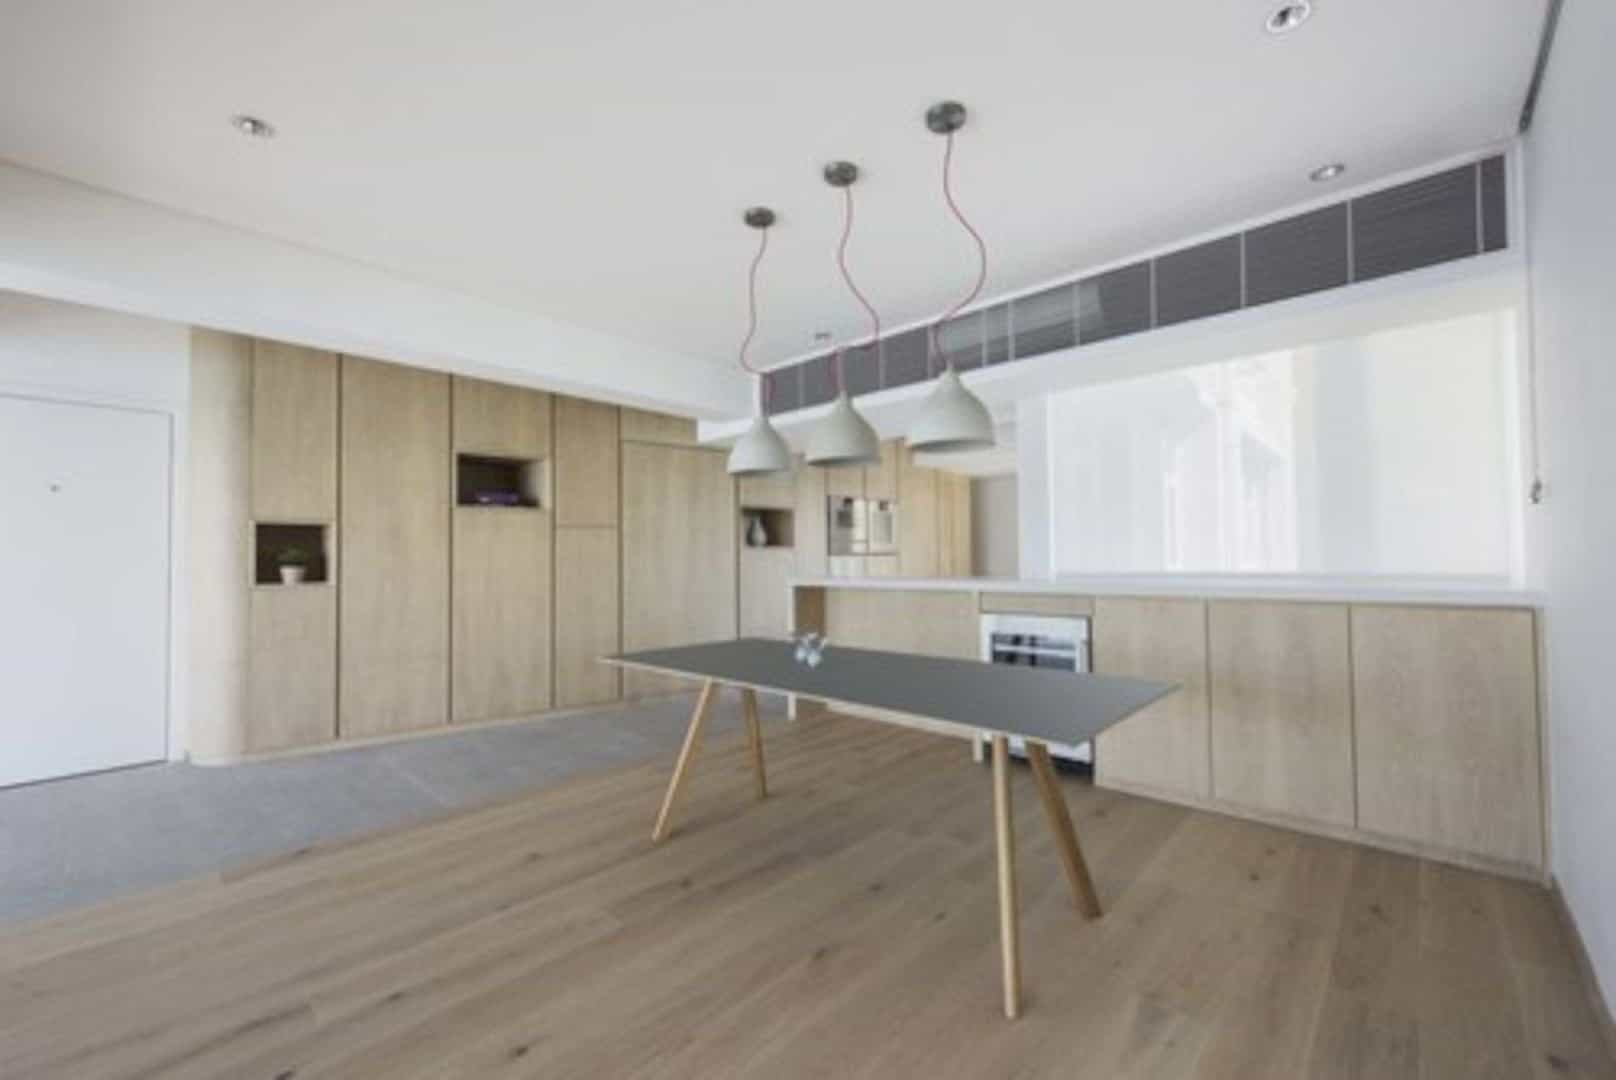 Cabinet Of Curiosities Turning A Dark Cellular Layout Into Open Light Filled Living Place 2